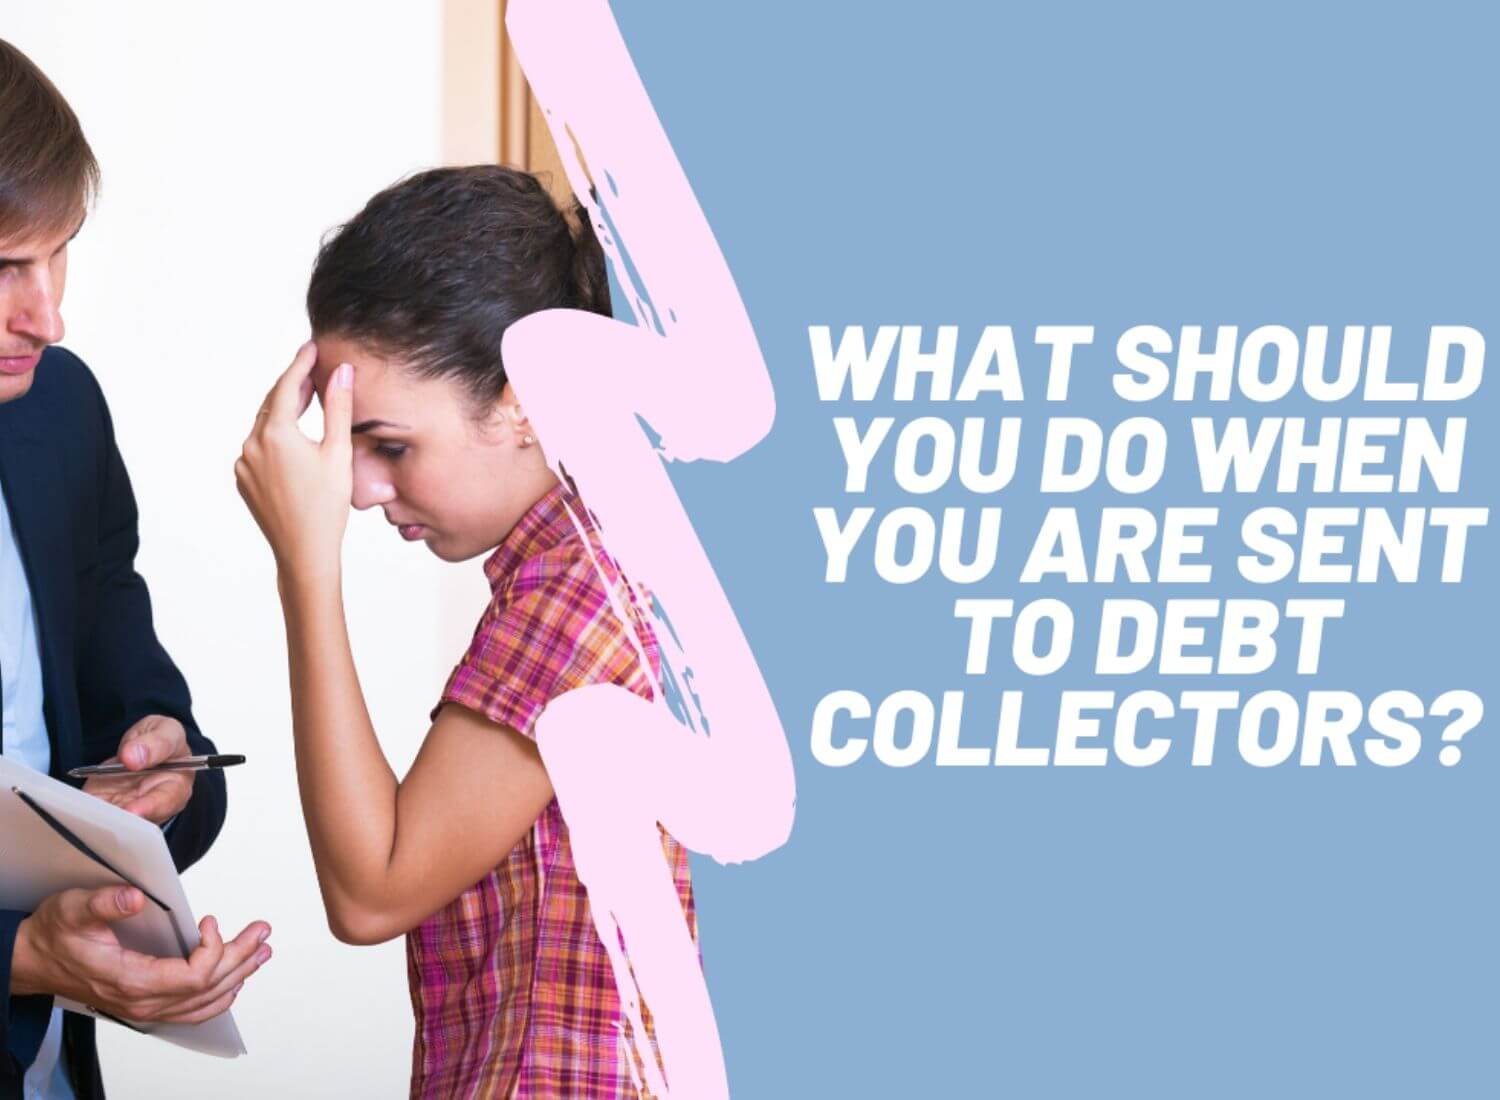 What Should You Do When You Are Sent To Debt Collectors?